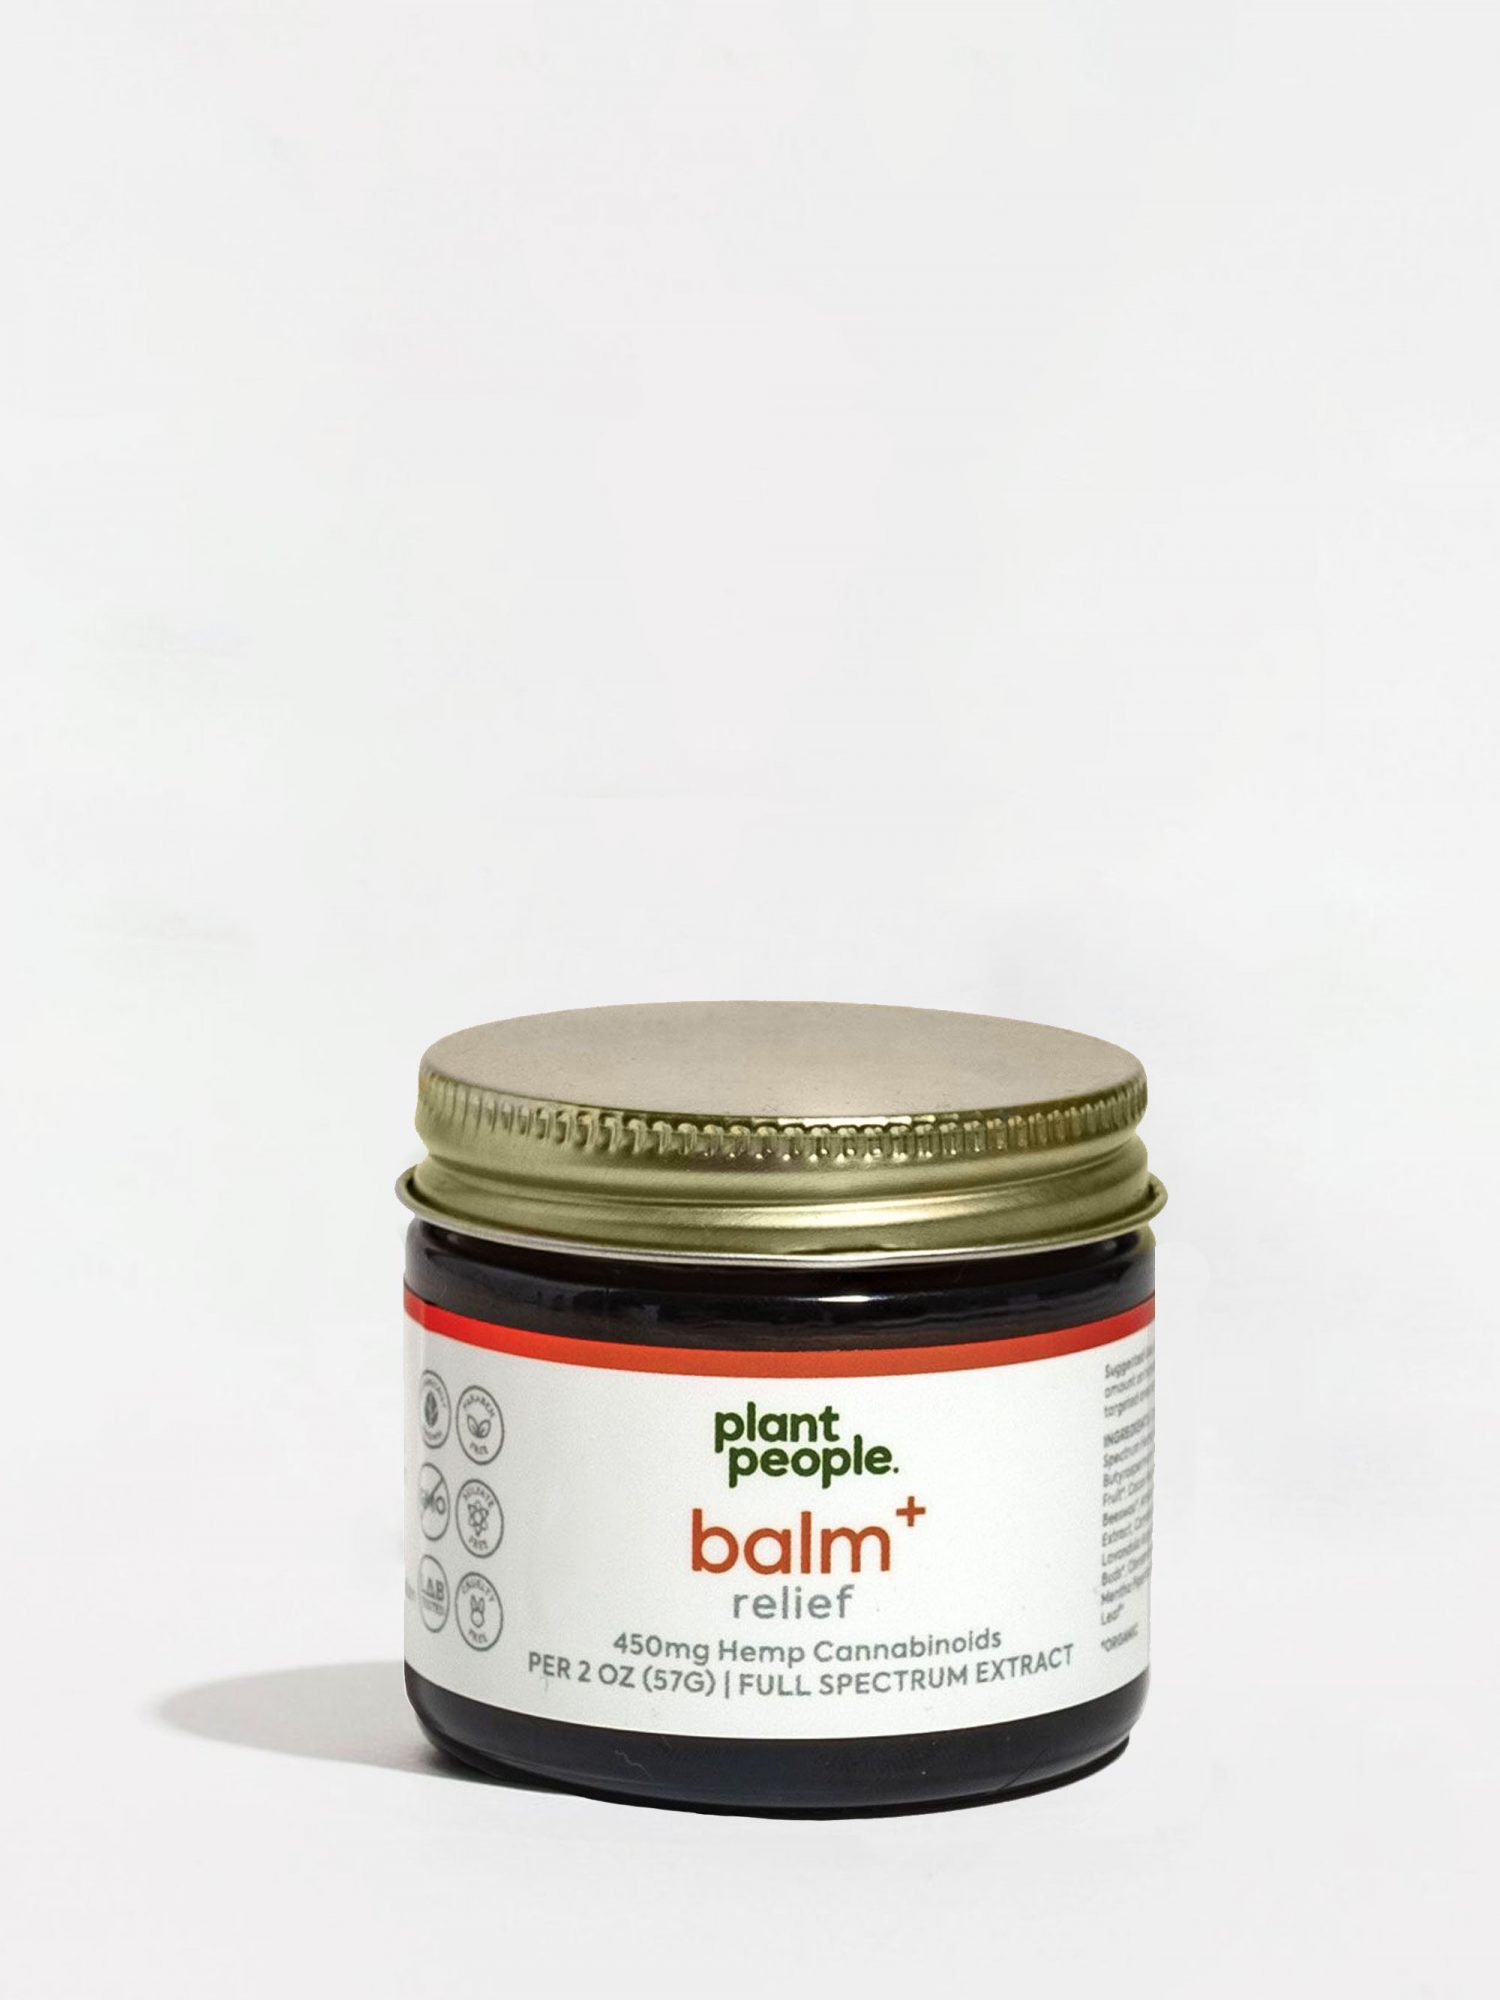 plant people relief balm